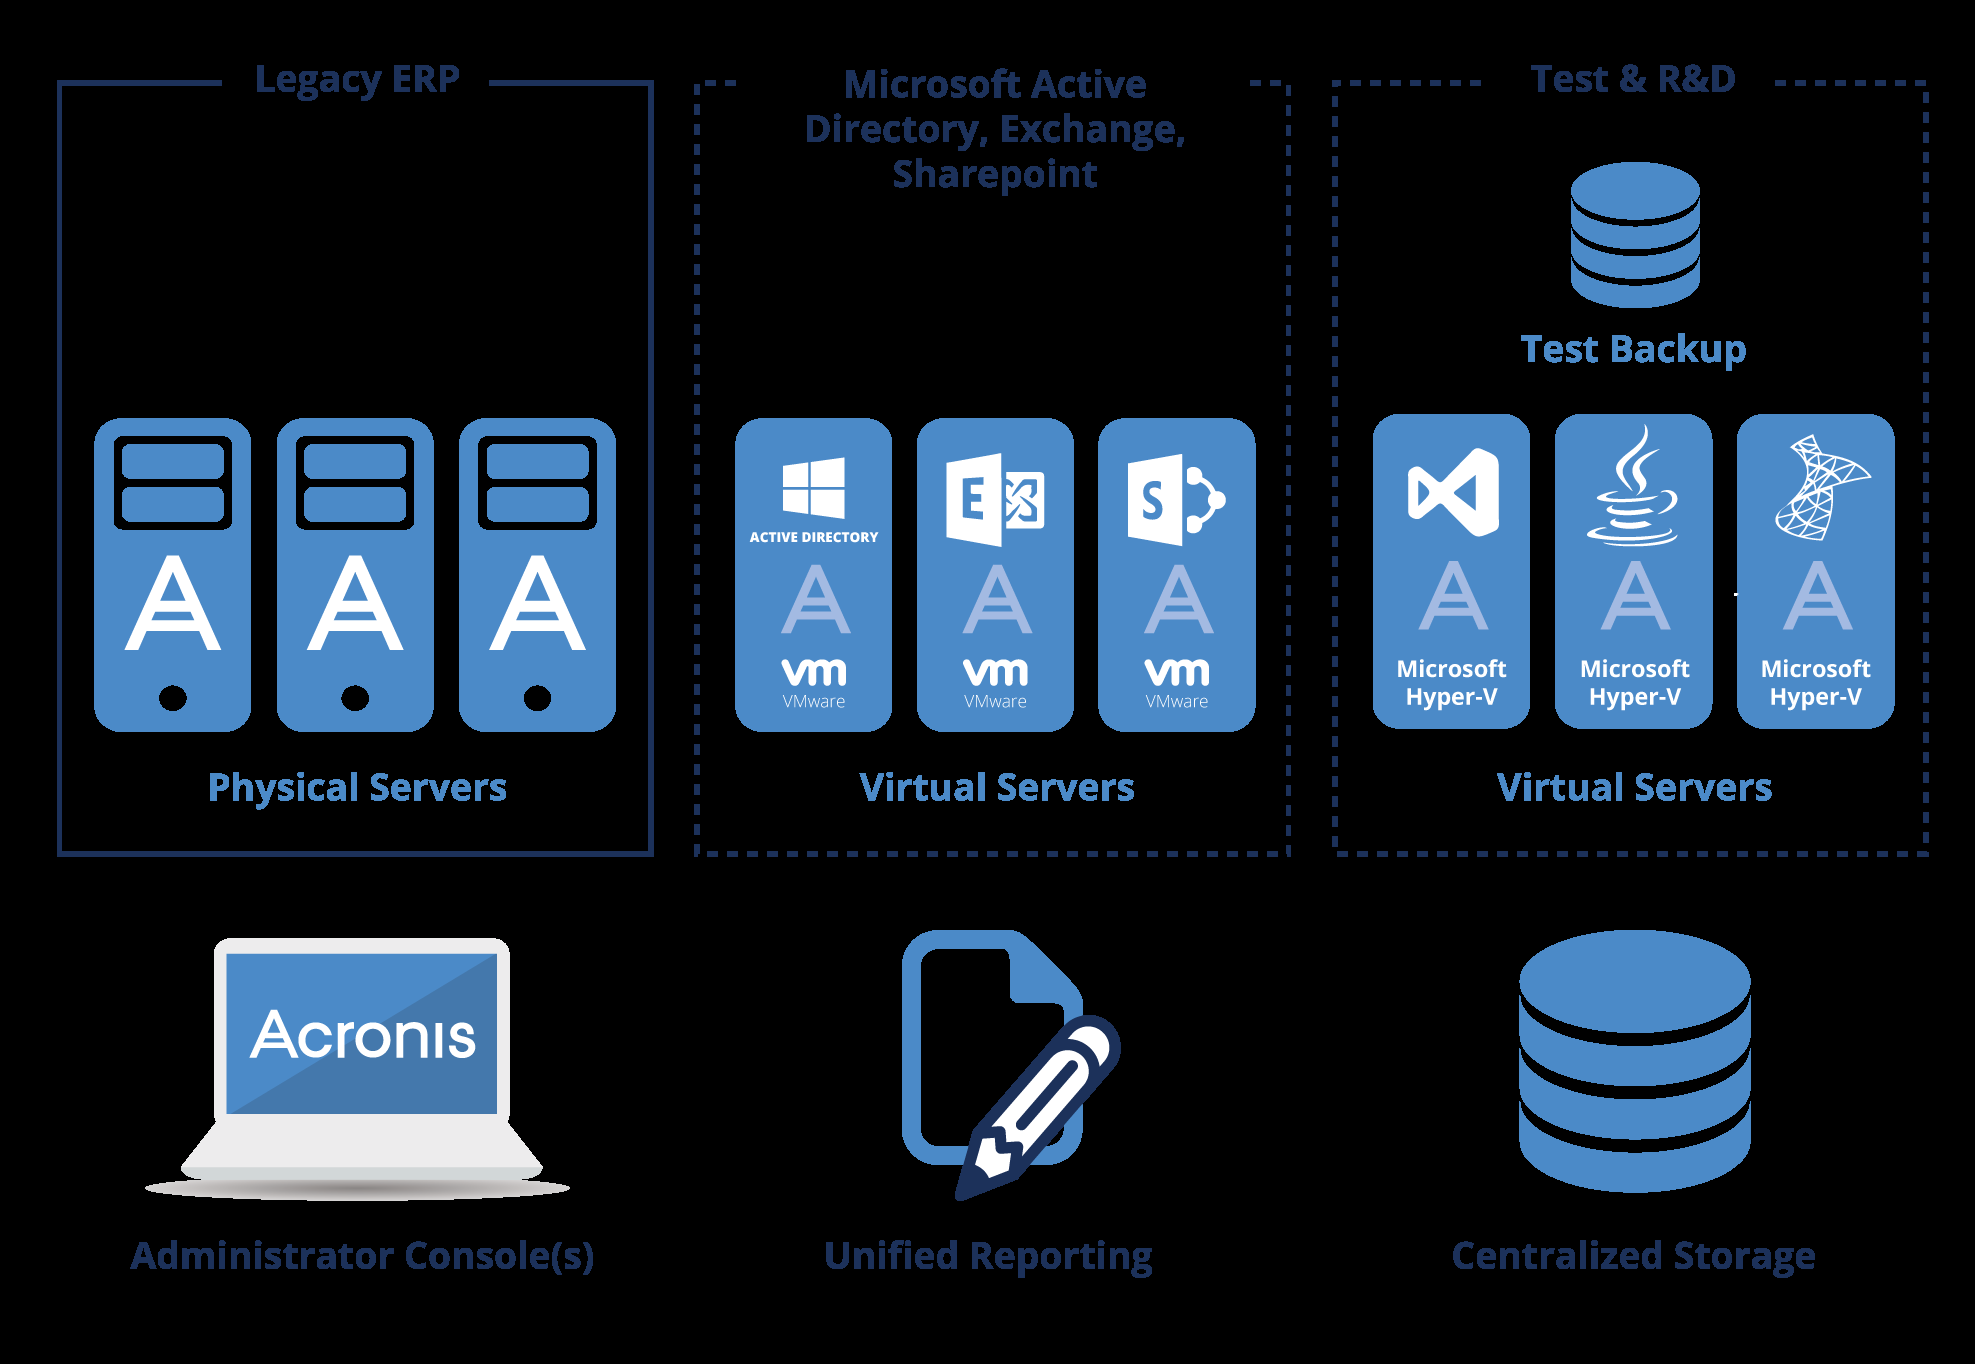 Medium-sized Business Use Case Protecting a Medium-size Hybrid Environment This medium-sized organization runs all key operations using a specialized ERP system, running on a Windows server, which